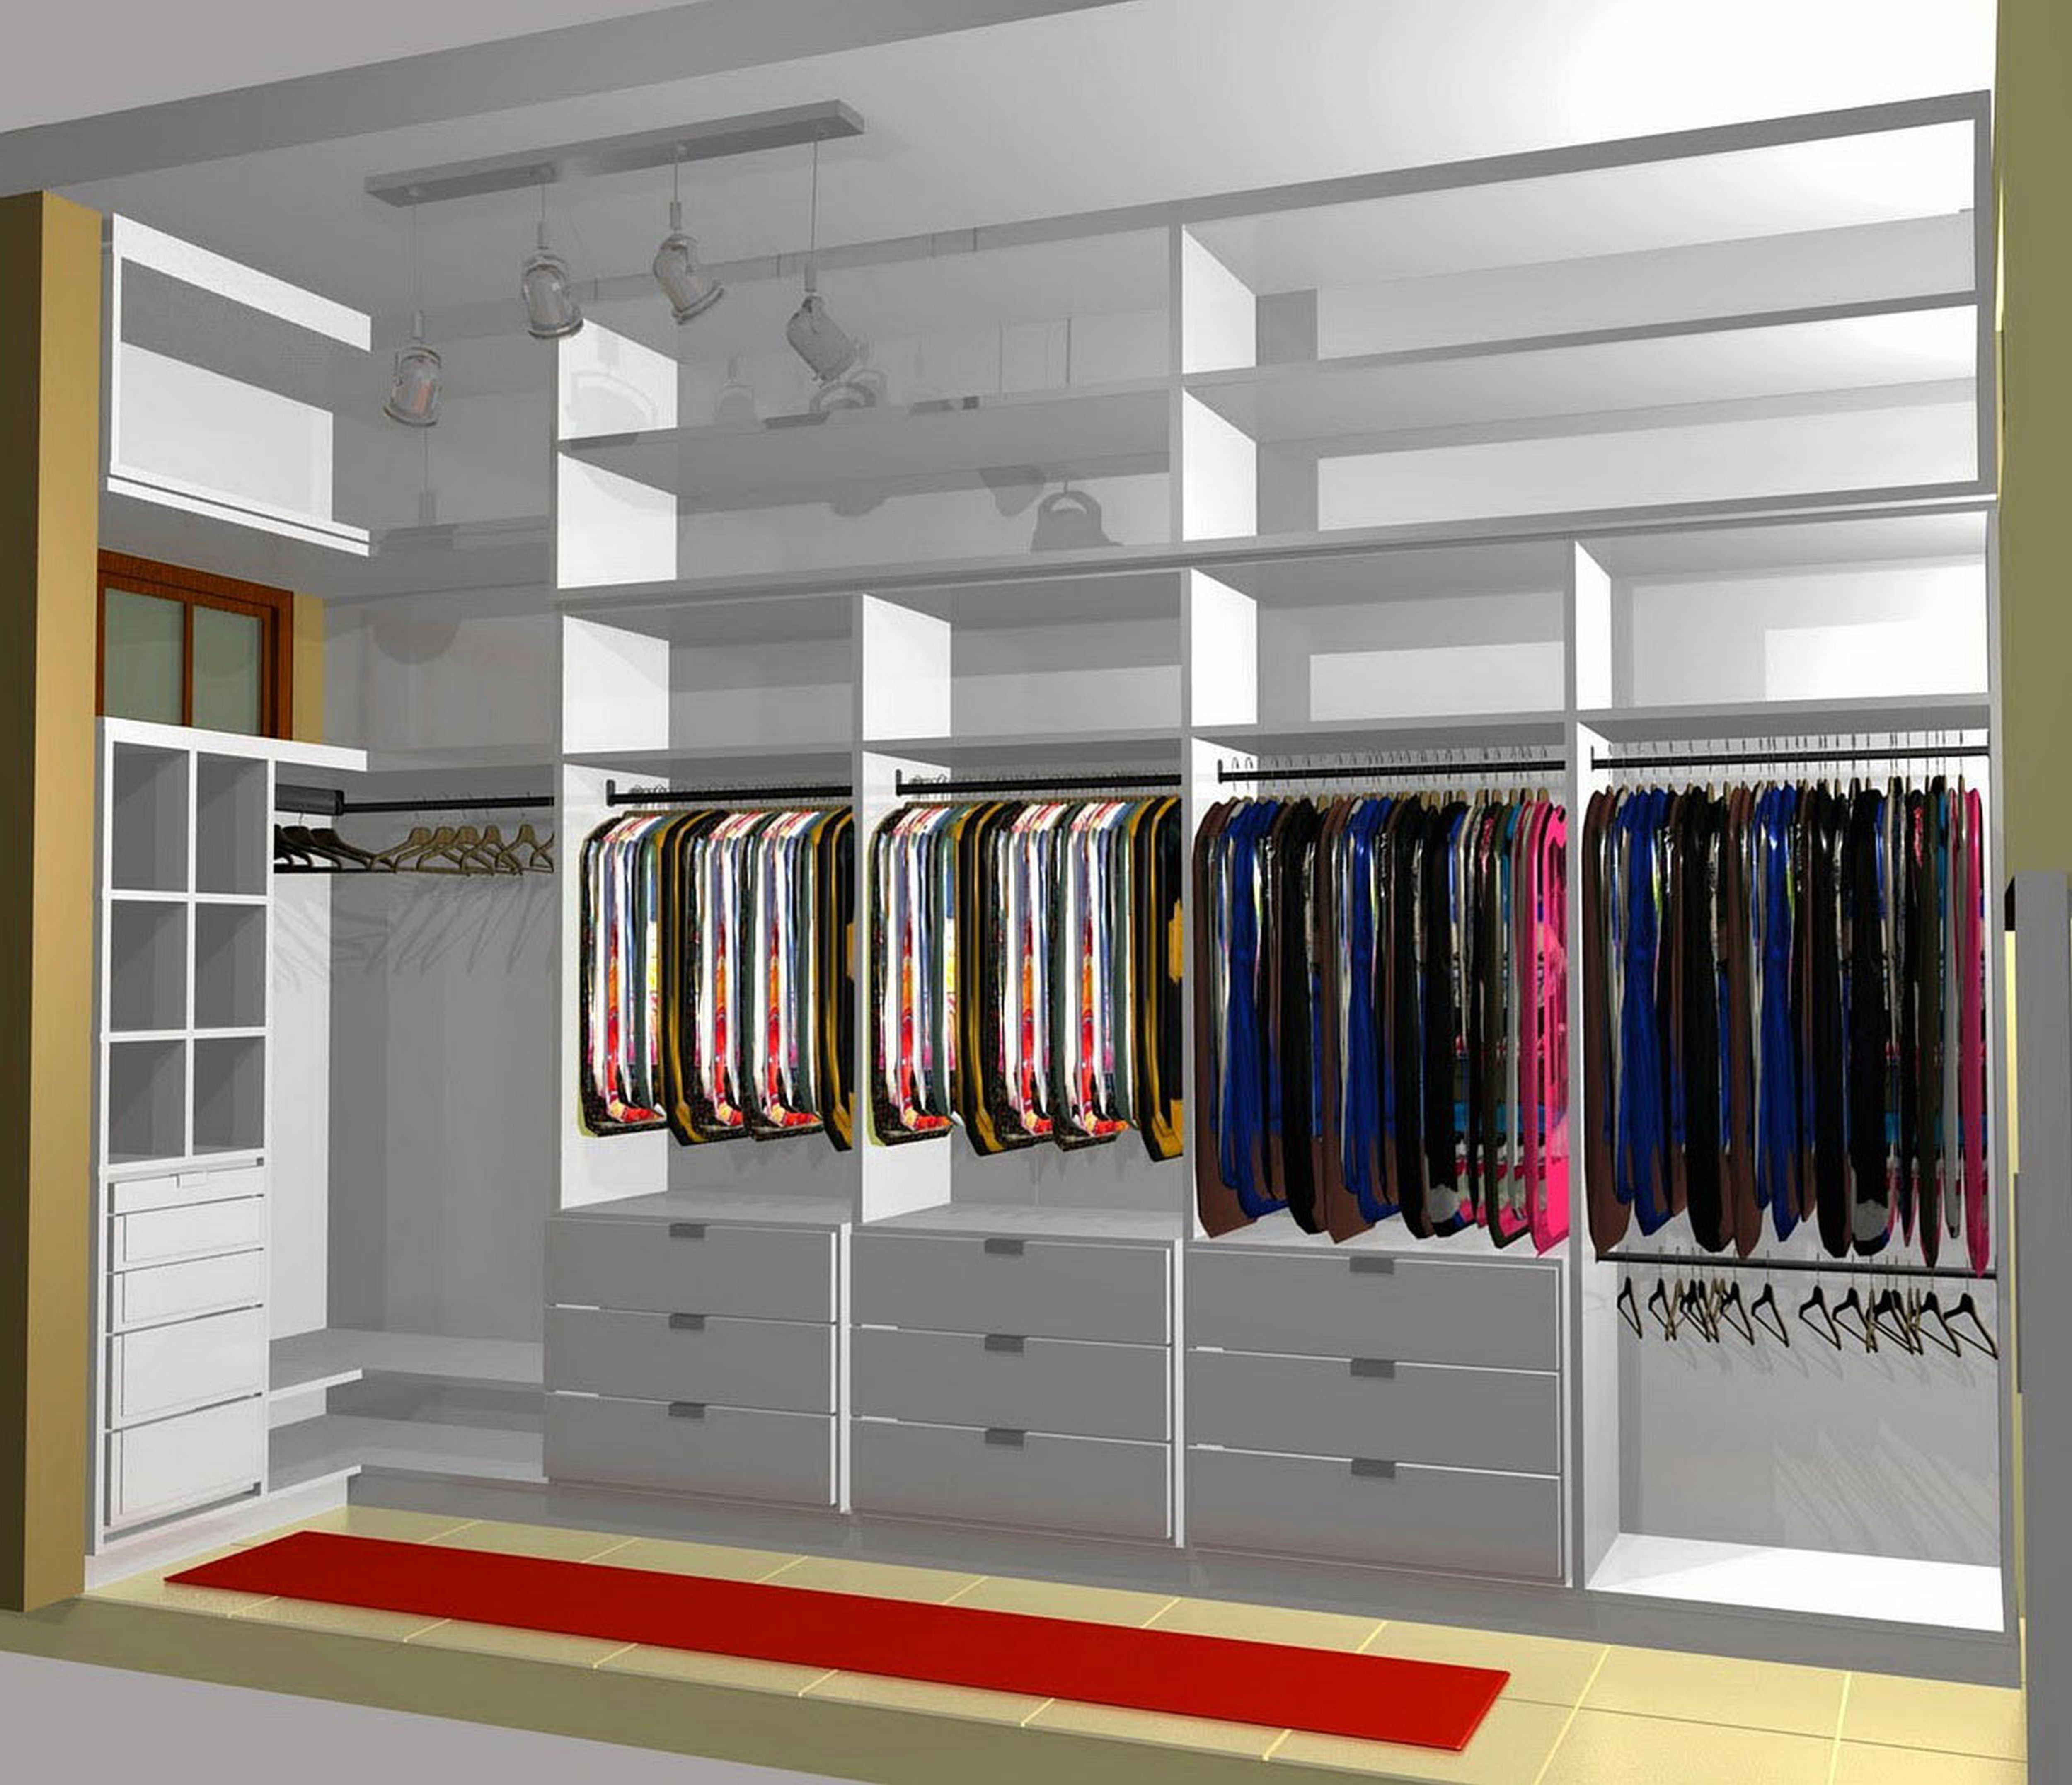 Wonderful Simple Design Small Walk In Closet Eas On A Budget Walk In Ideas To  Organize A Walk In Closet Unique Walk In Closet Ideas Modern Walk In Closet  Ideas ... Design